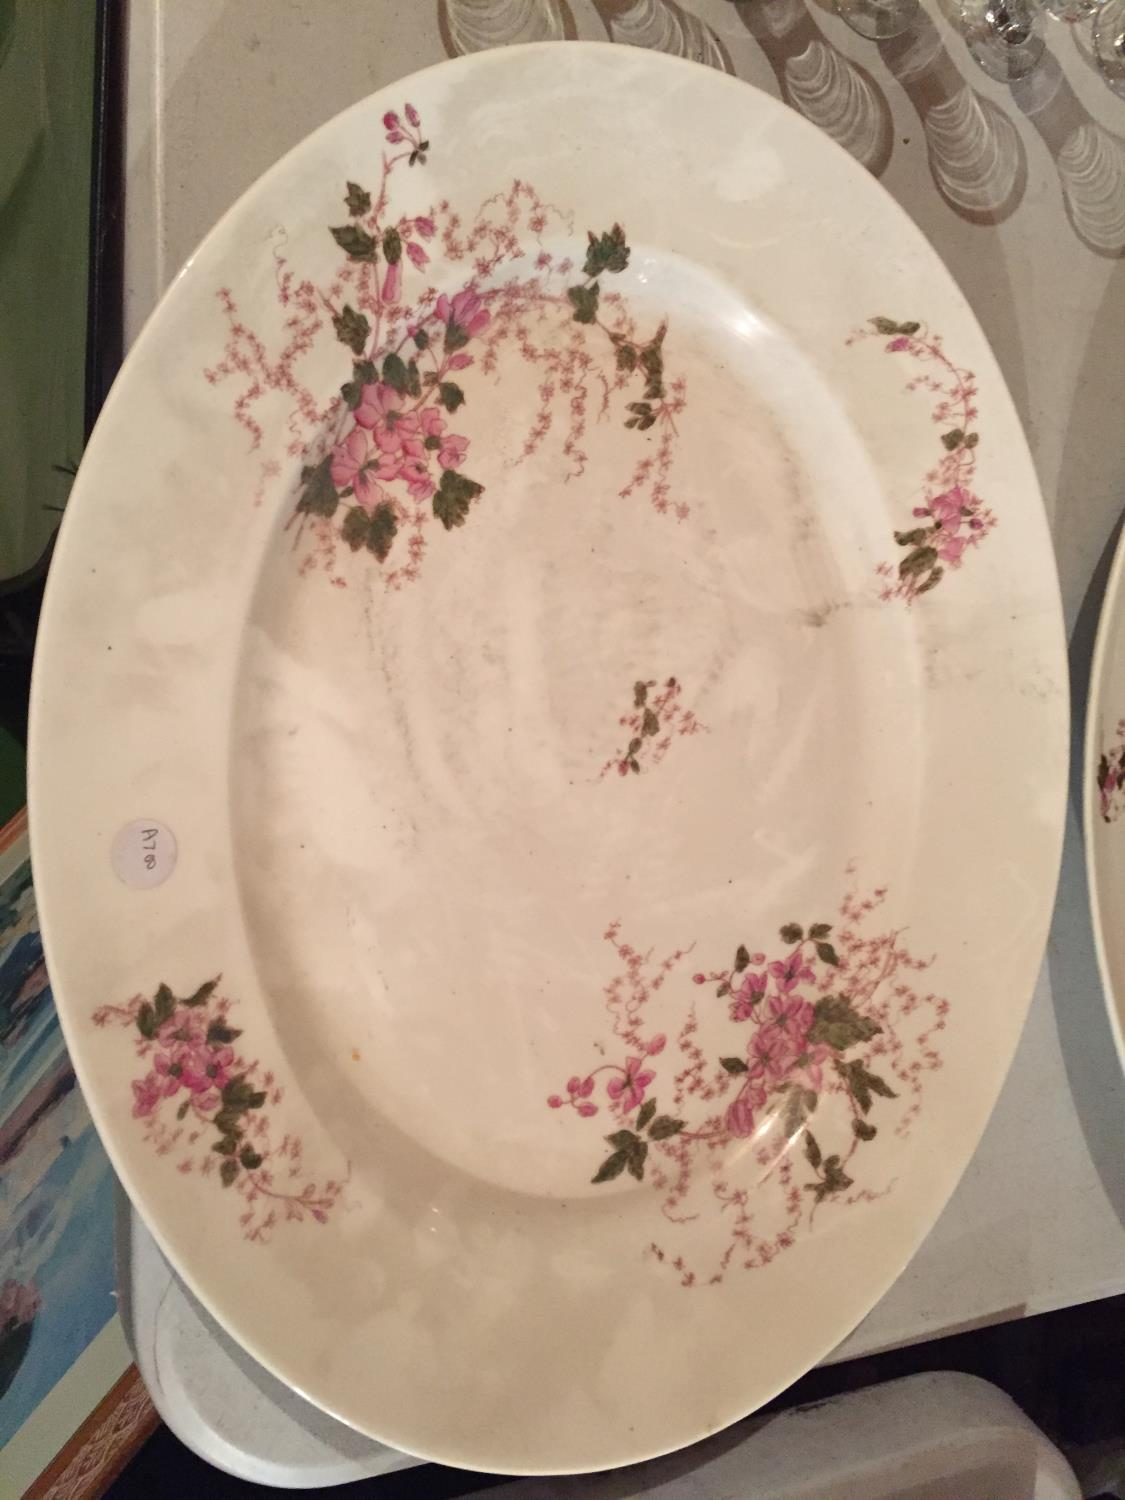 TWO LARGE HEAVY CERAMIC MEAT PLATTERS WITH A DELICATE PINK FLOWER DESIGN - Image 3 of 6